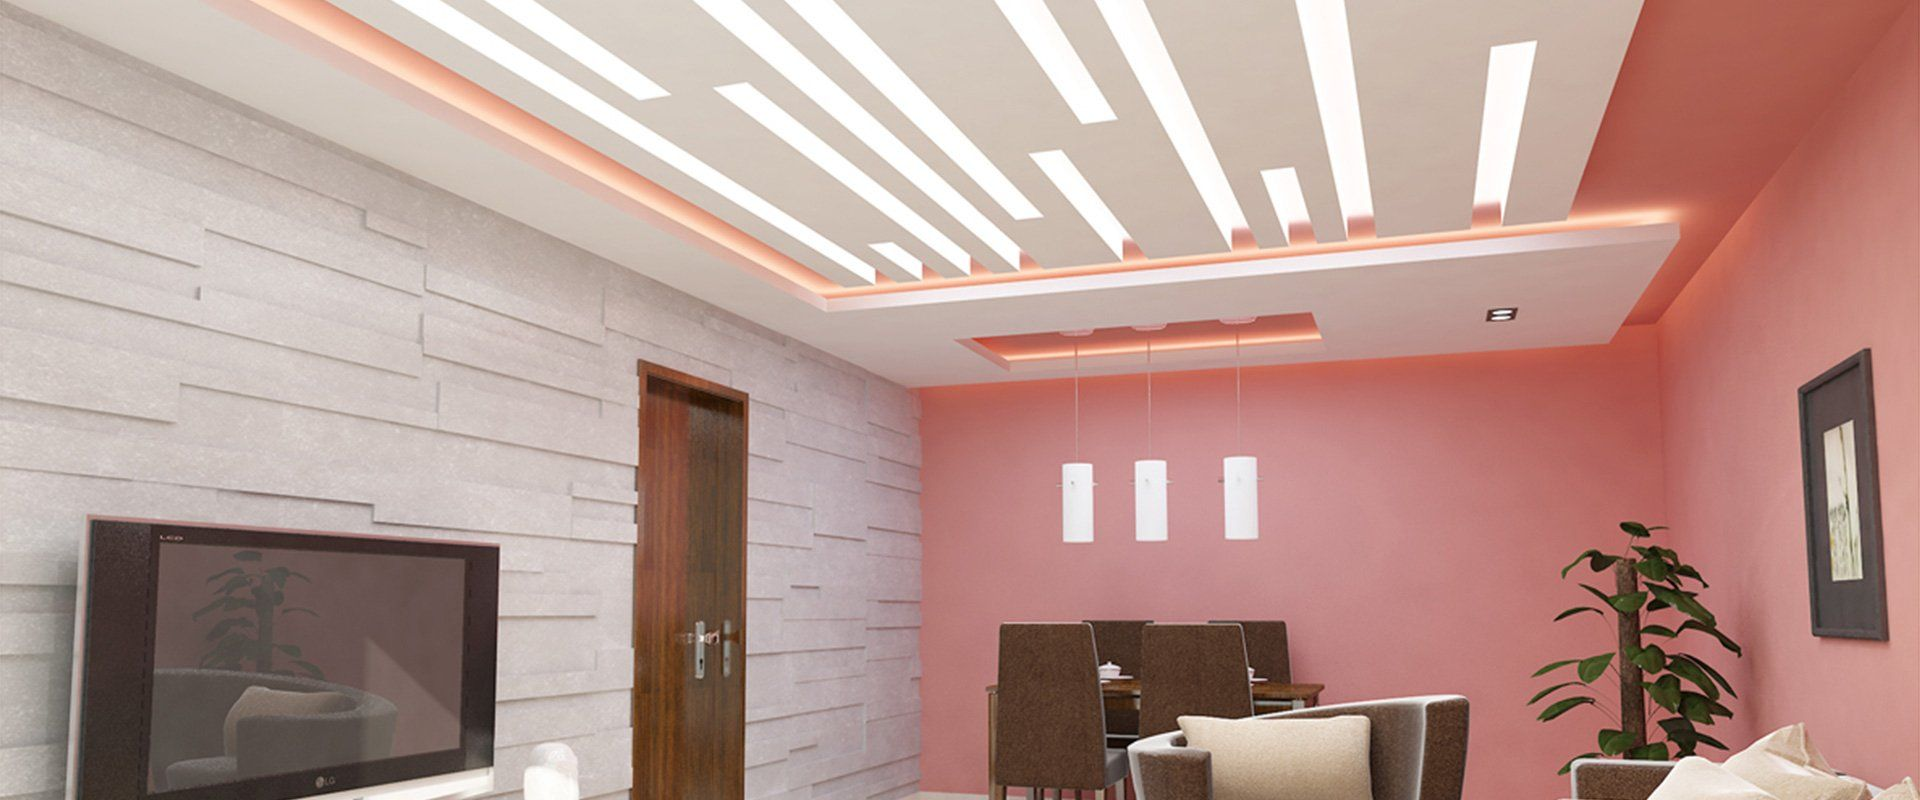 Yellow Gypsum Board : False ceiling gypsum board drywall plaster saint